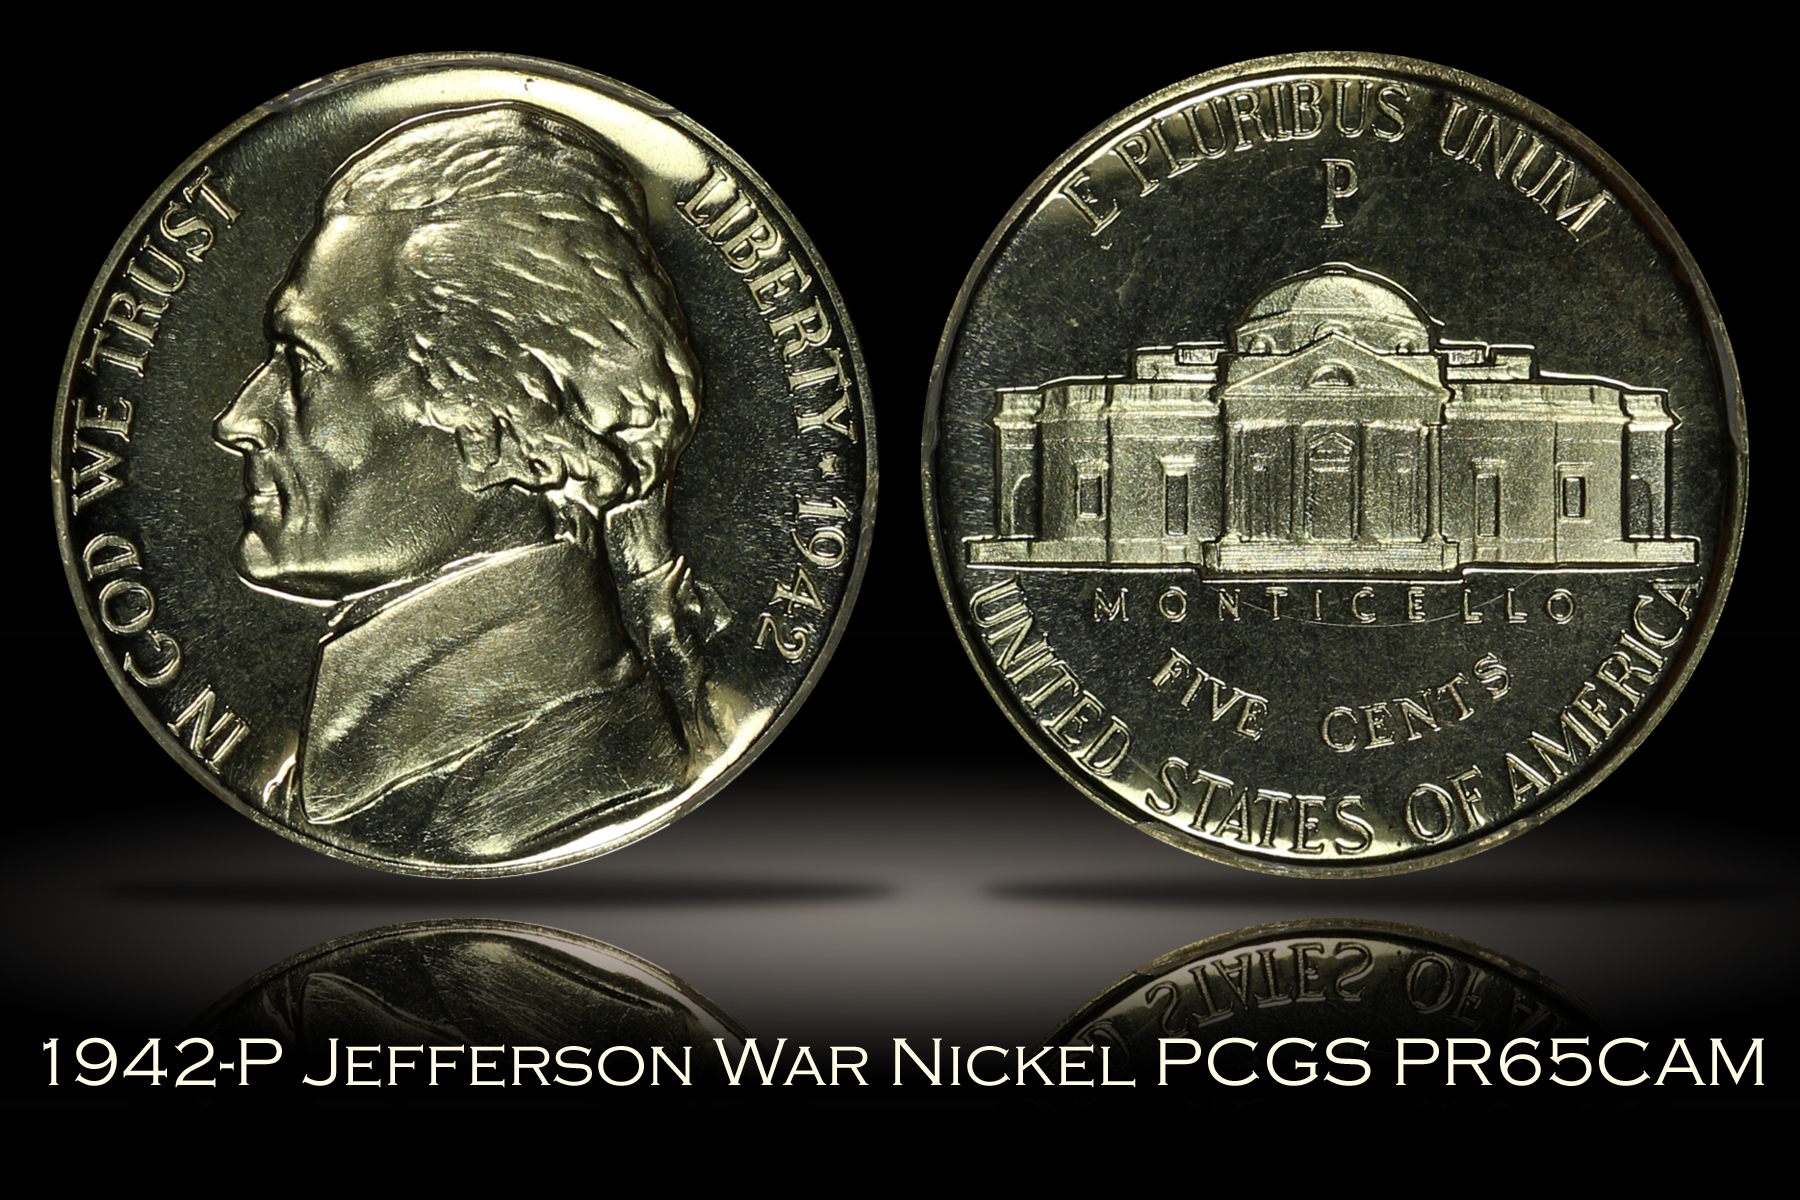 1942-P Proof Type 2 Jefferson War Nickel PCGS PR65CAM